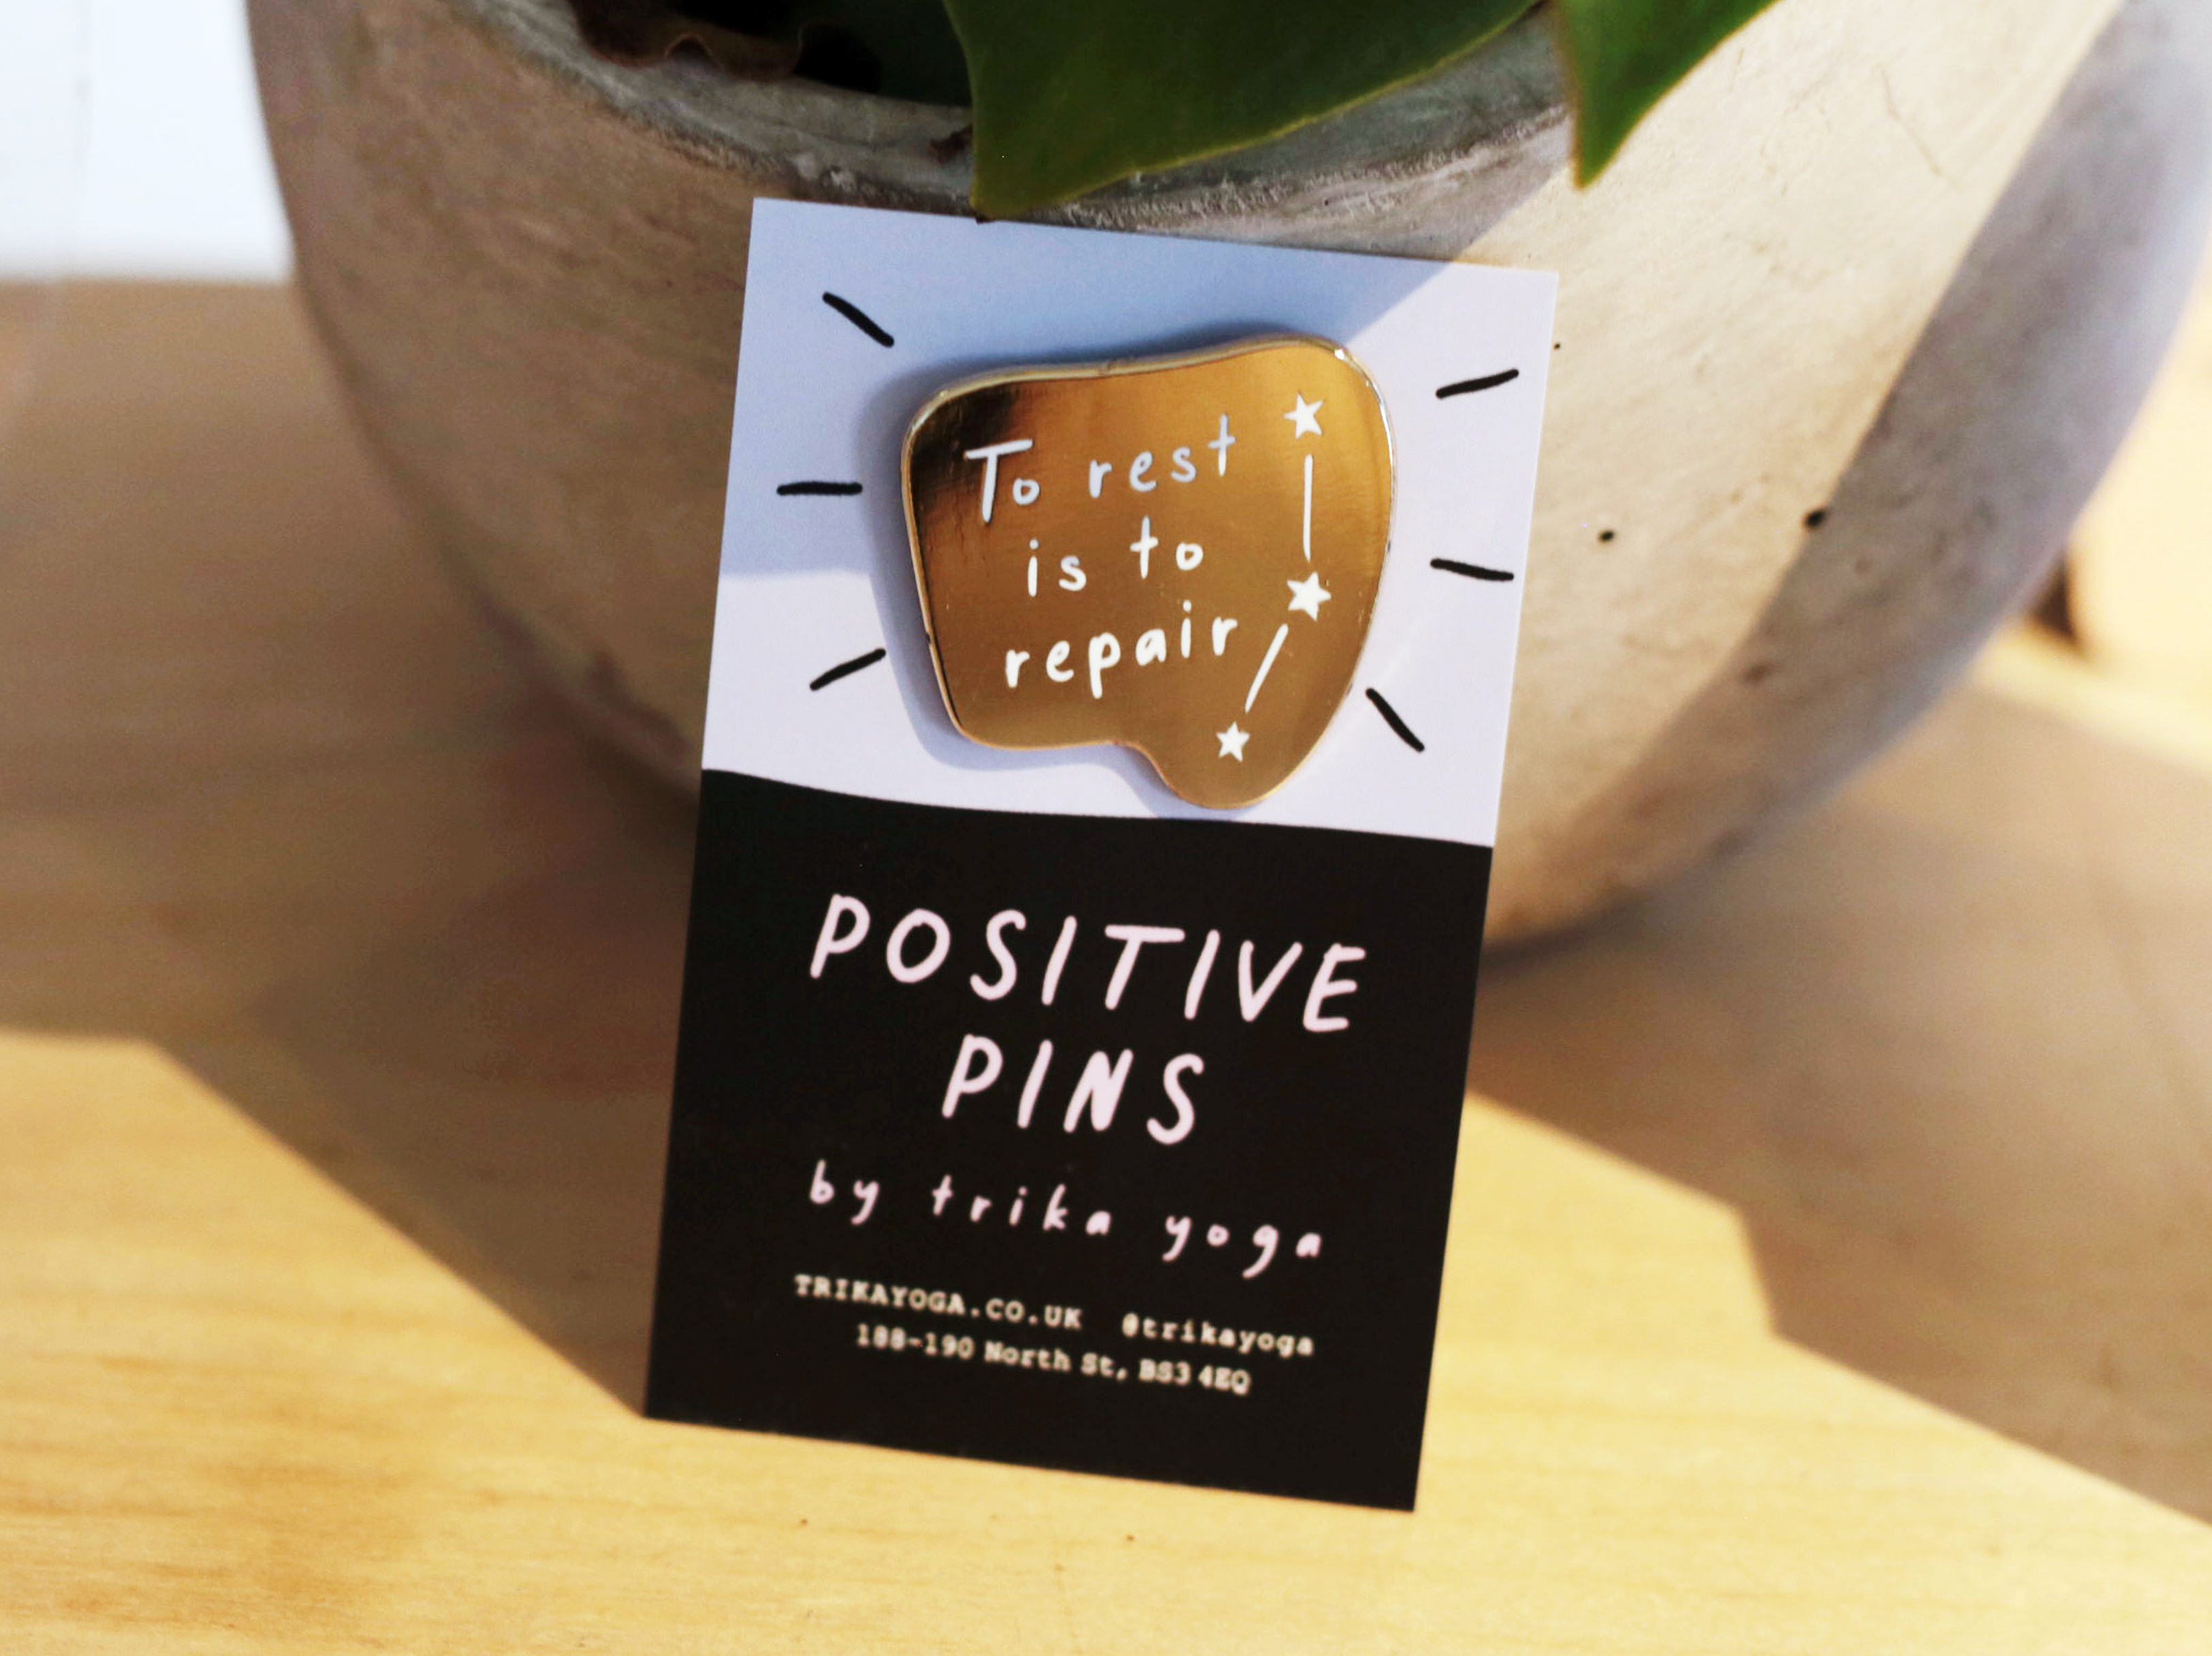 Positive Pins: To Rest is To Repair